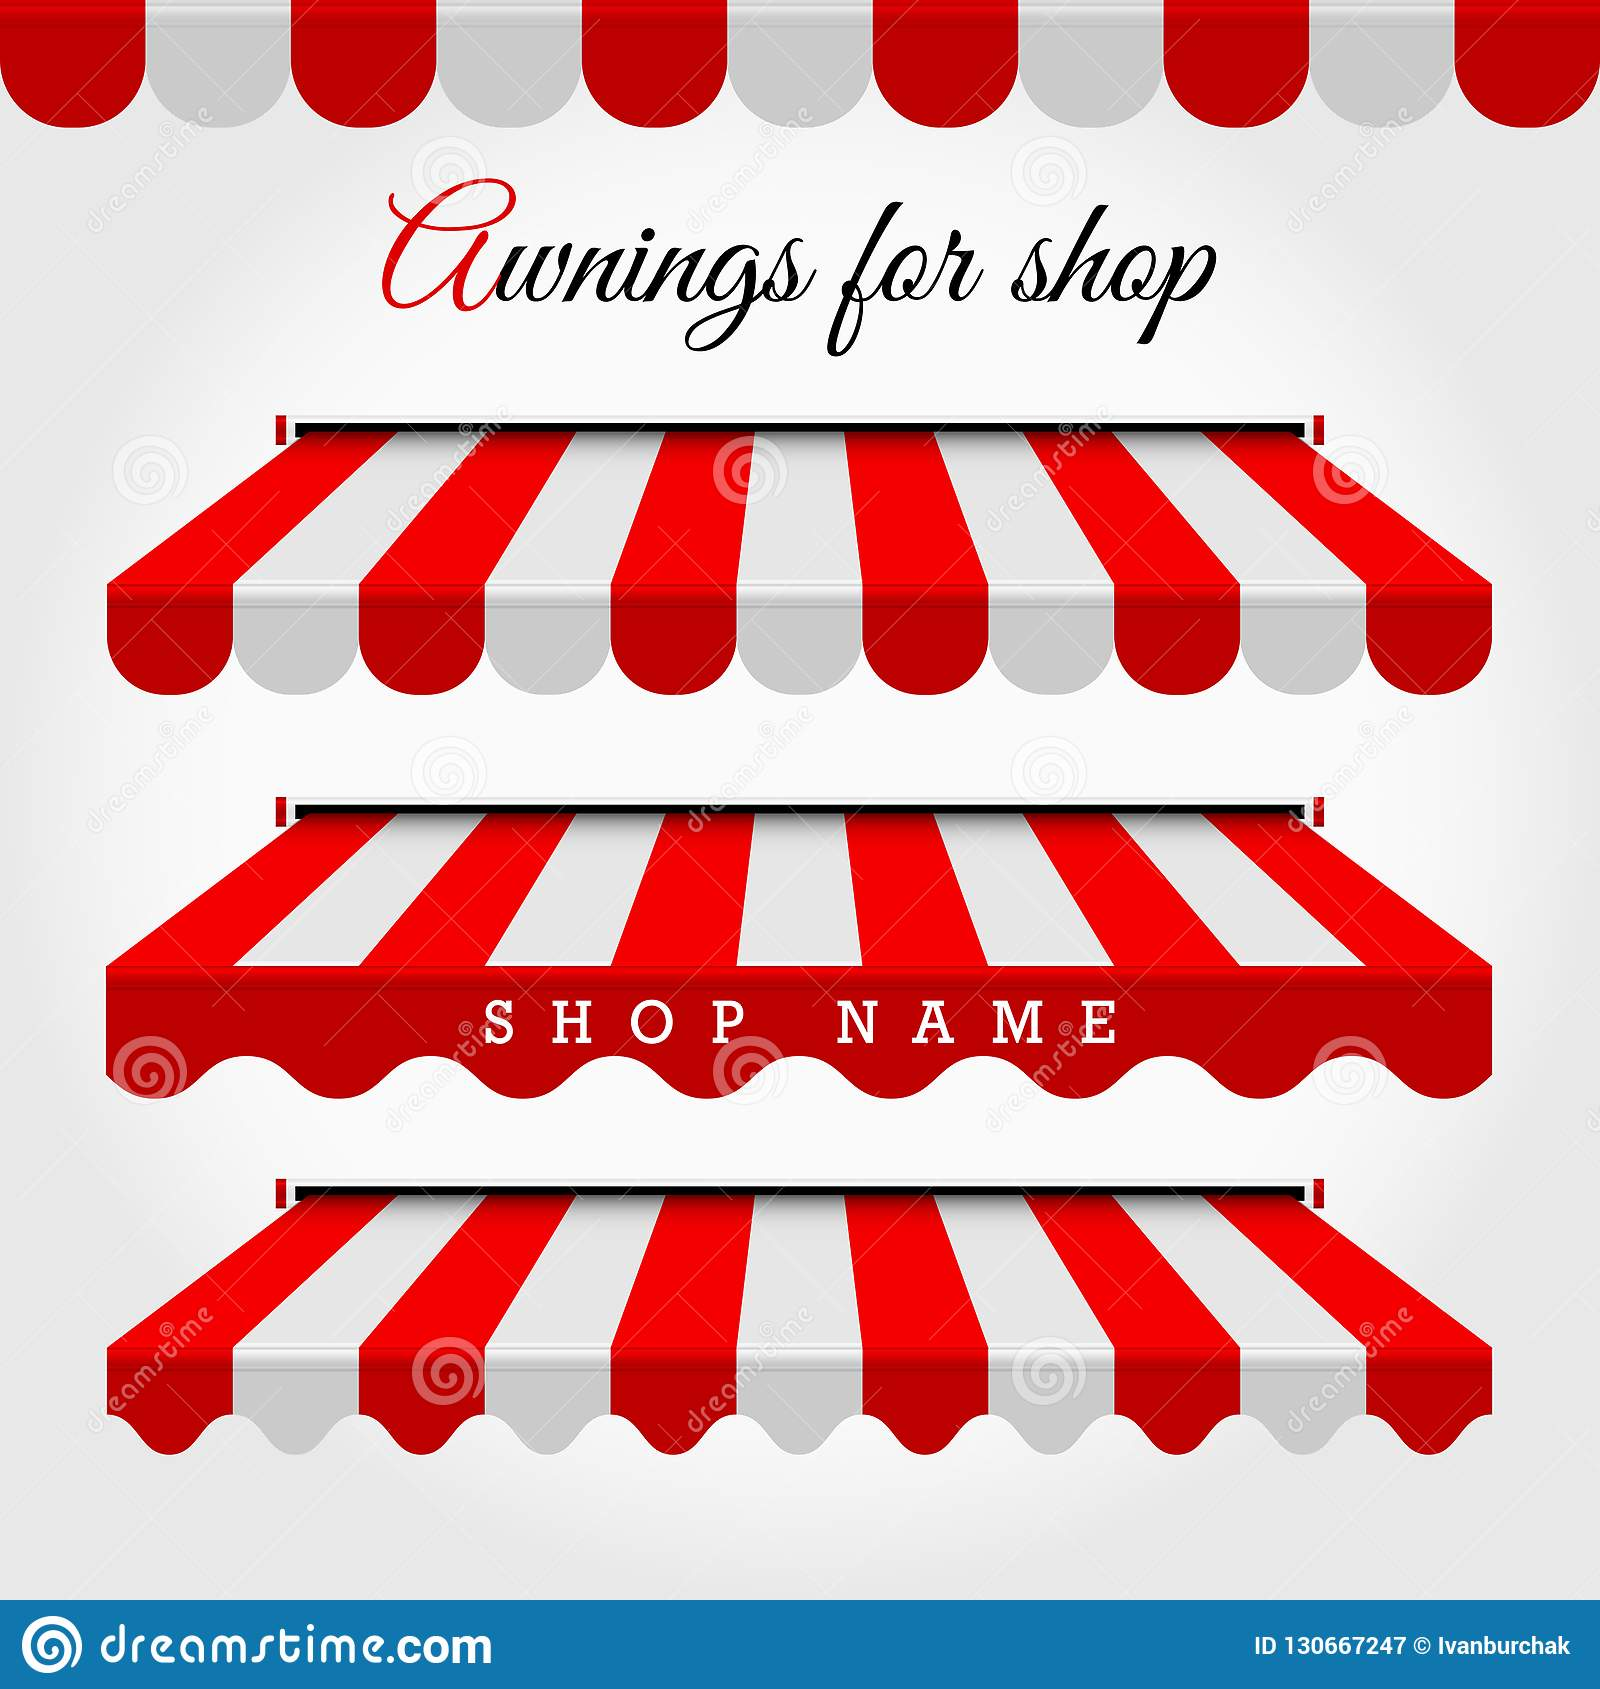 Red And White Striped Vector Awnings For Shop, Cafe ...